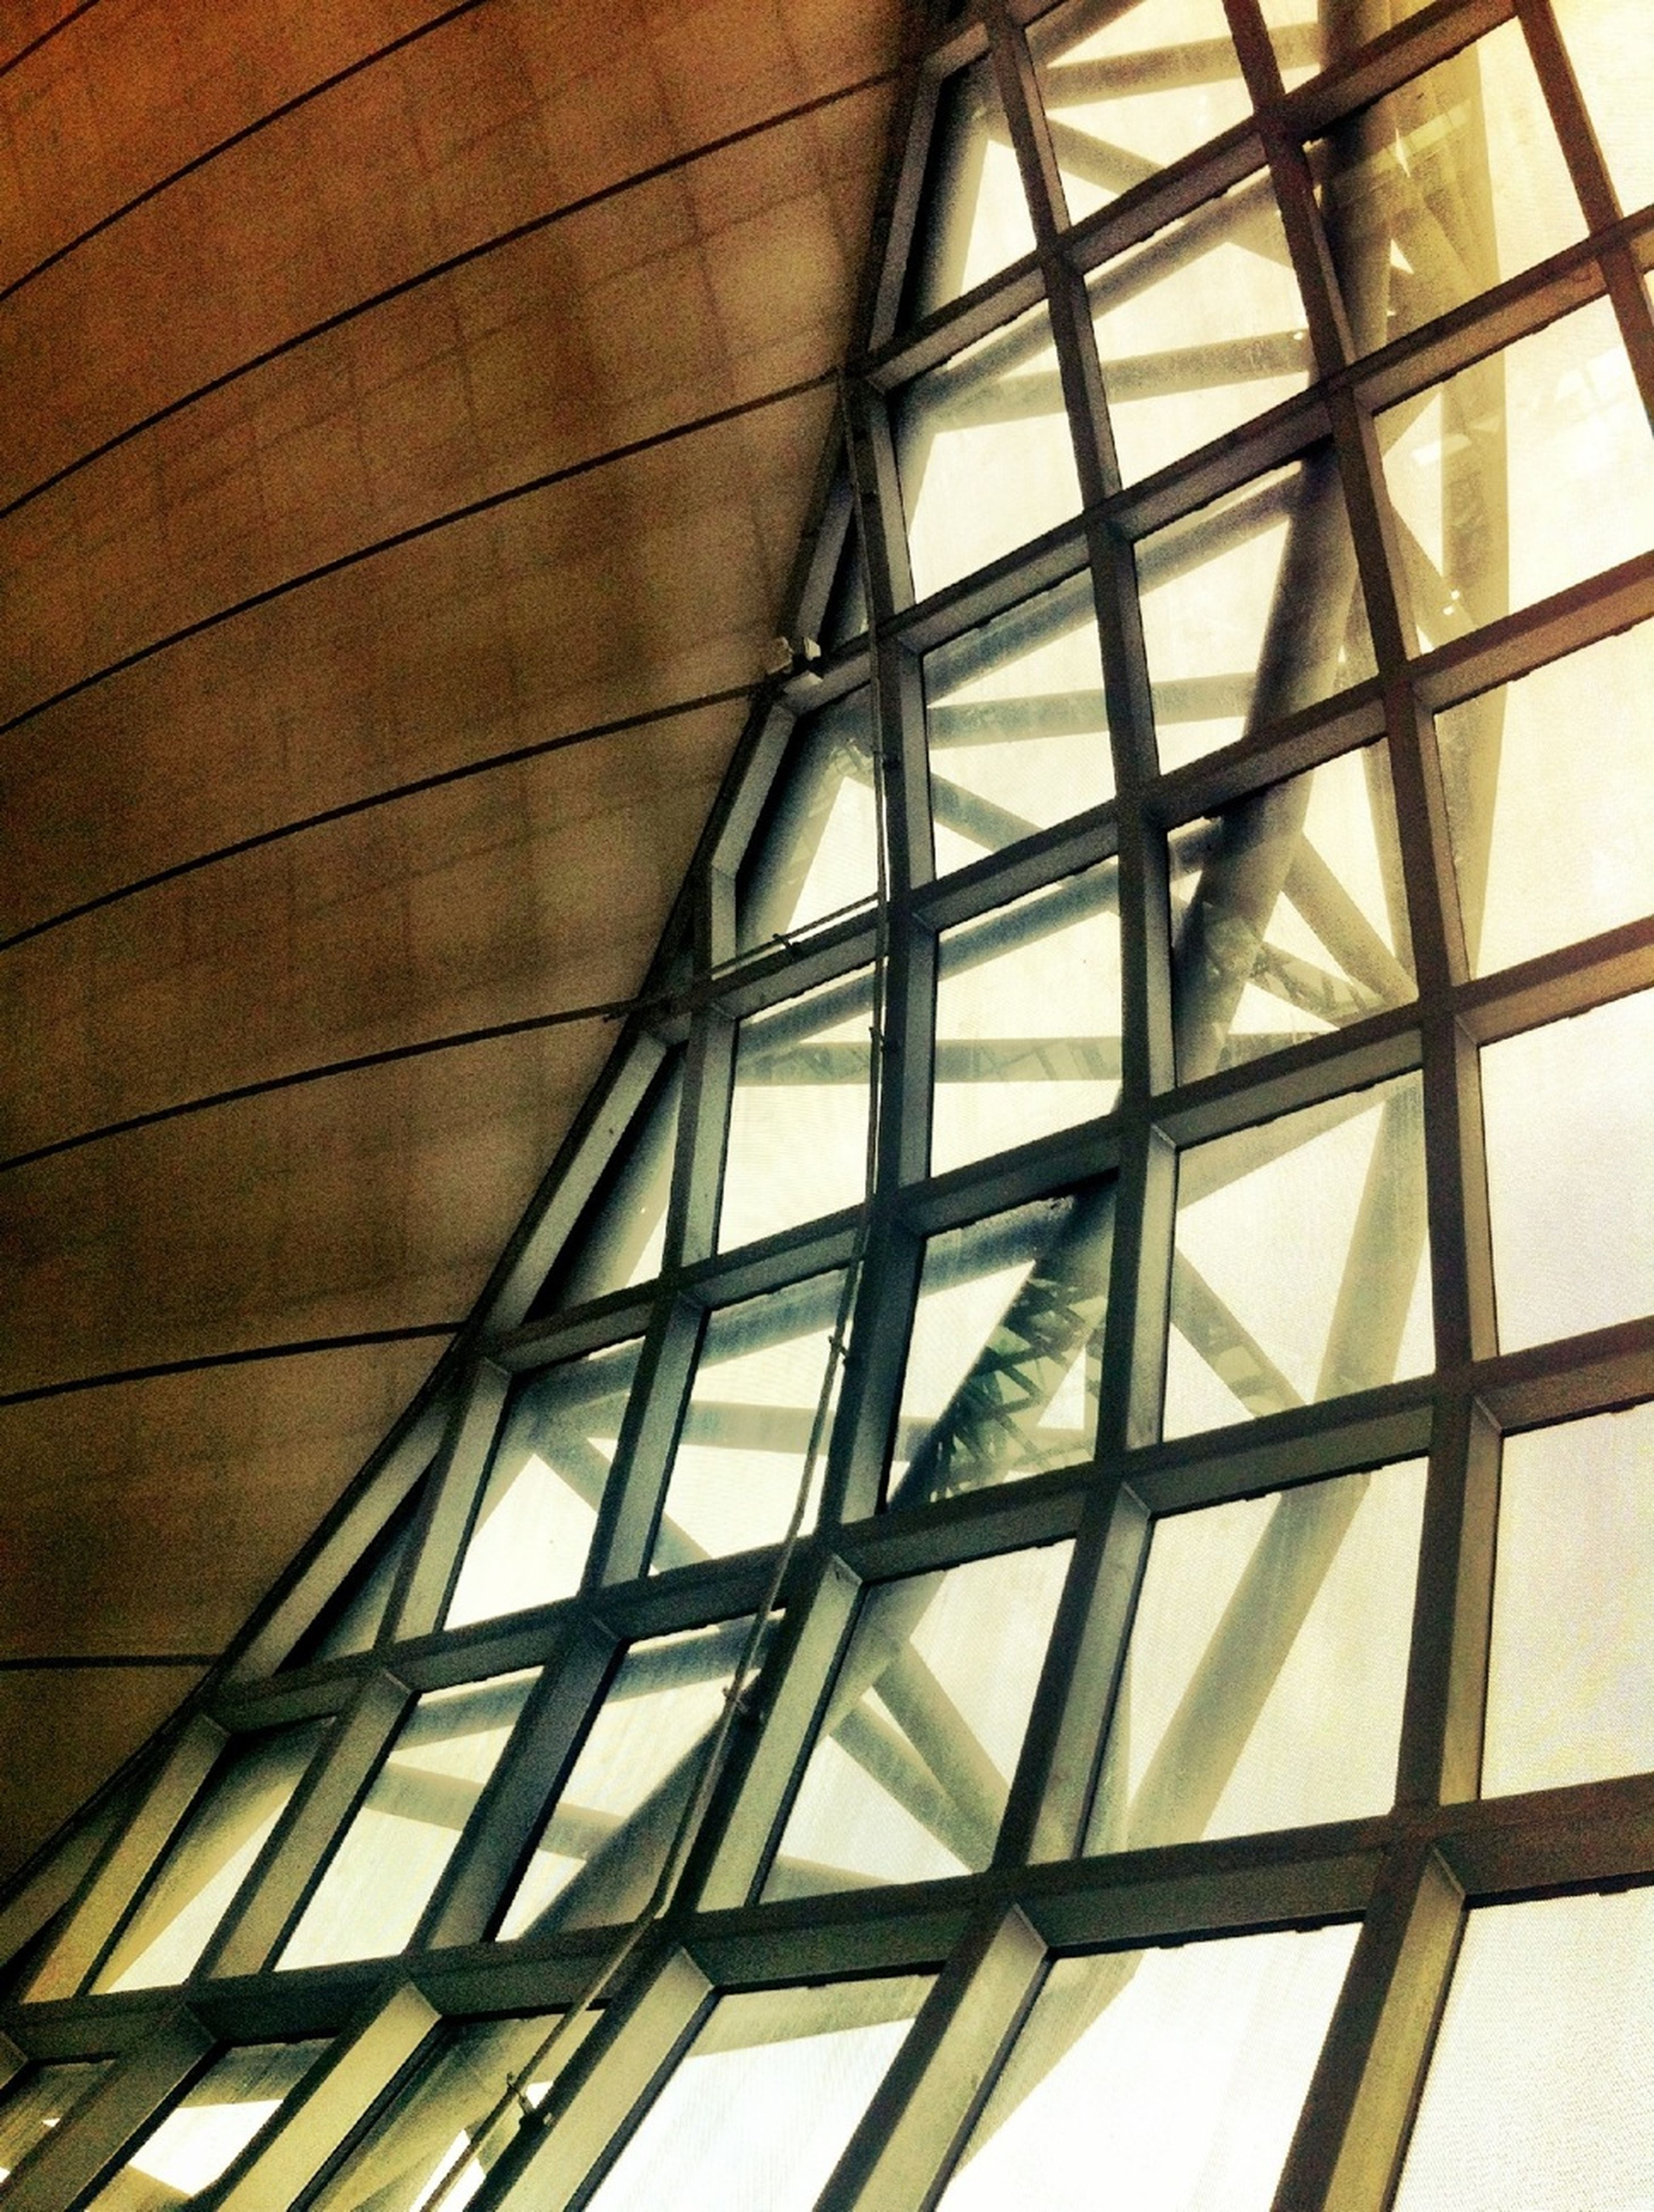 architecture, built structure, low angle view, glass - material, building exterior, indoors, window, modern, pattern, building, architectural feature, ceiling, geometric shape, full frame, directly below, sky, skylight, day, no people, reflection